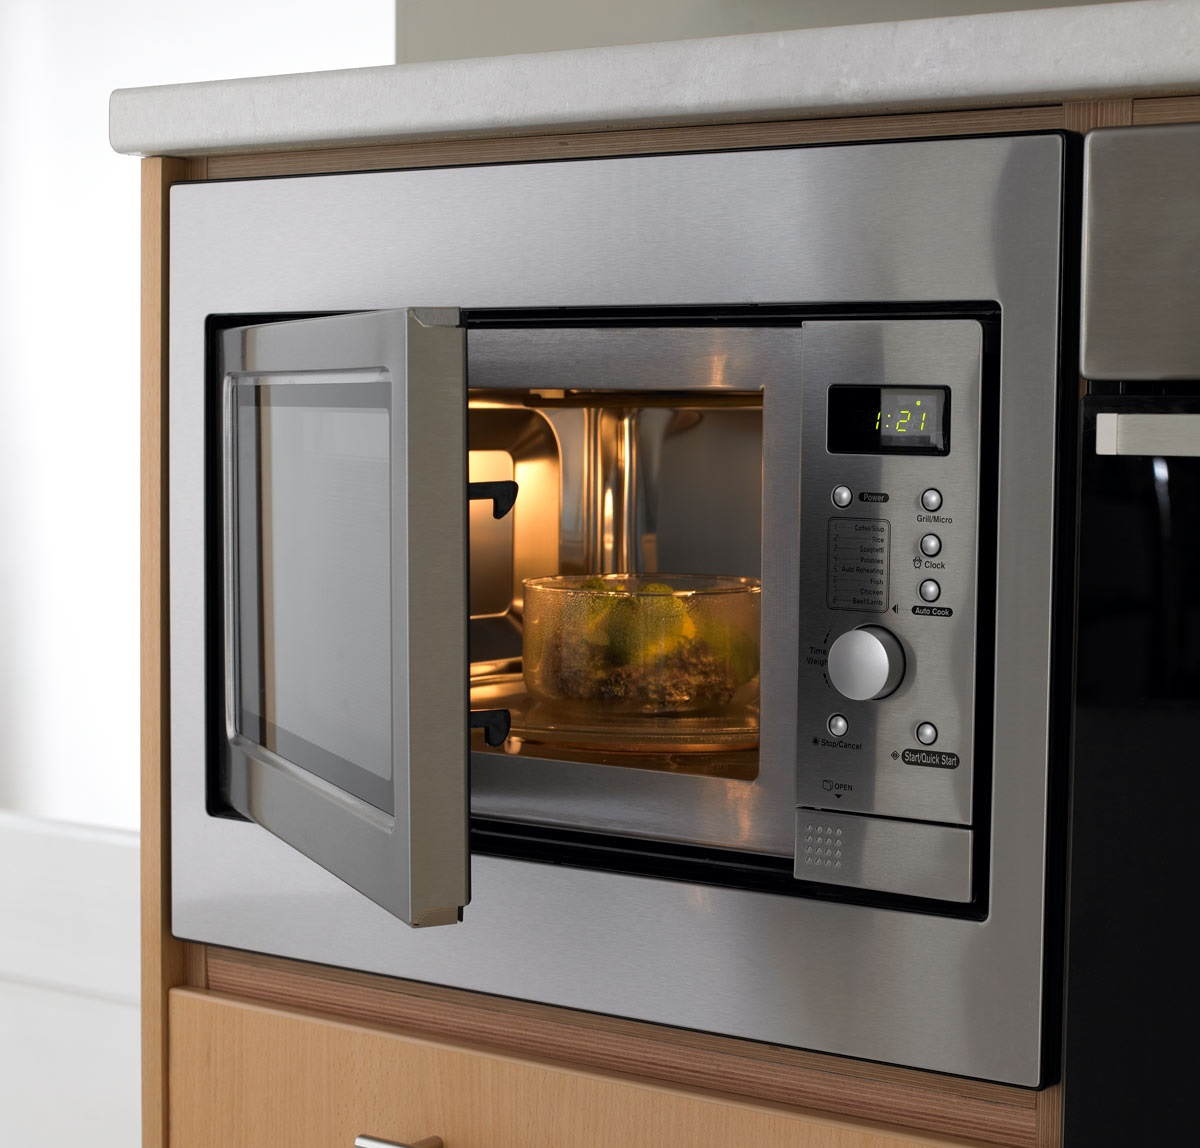 microwave-oven1